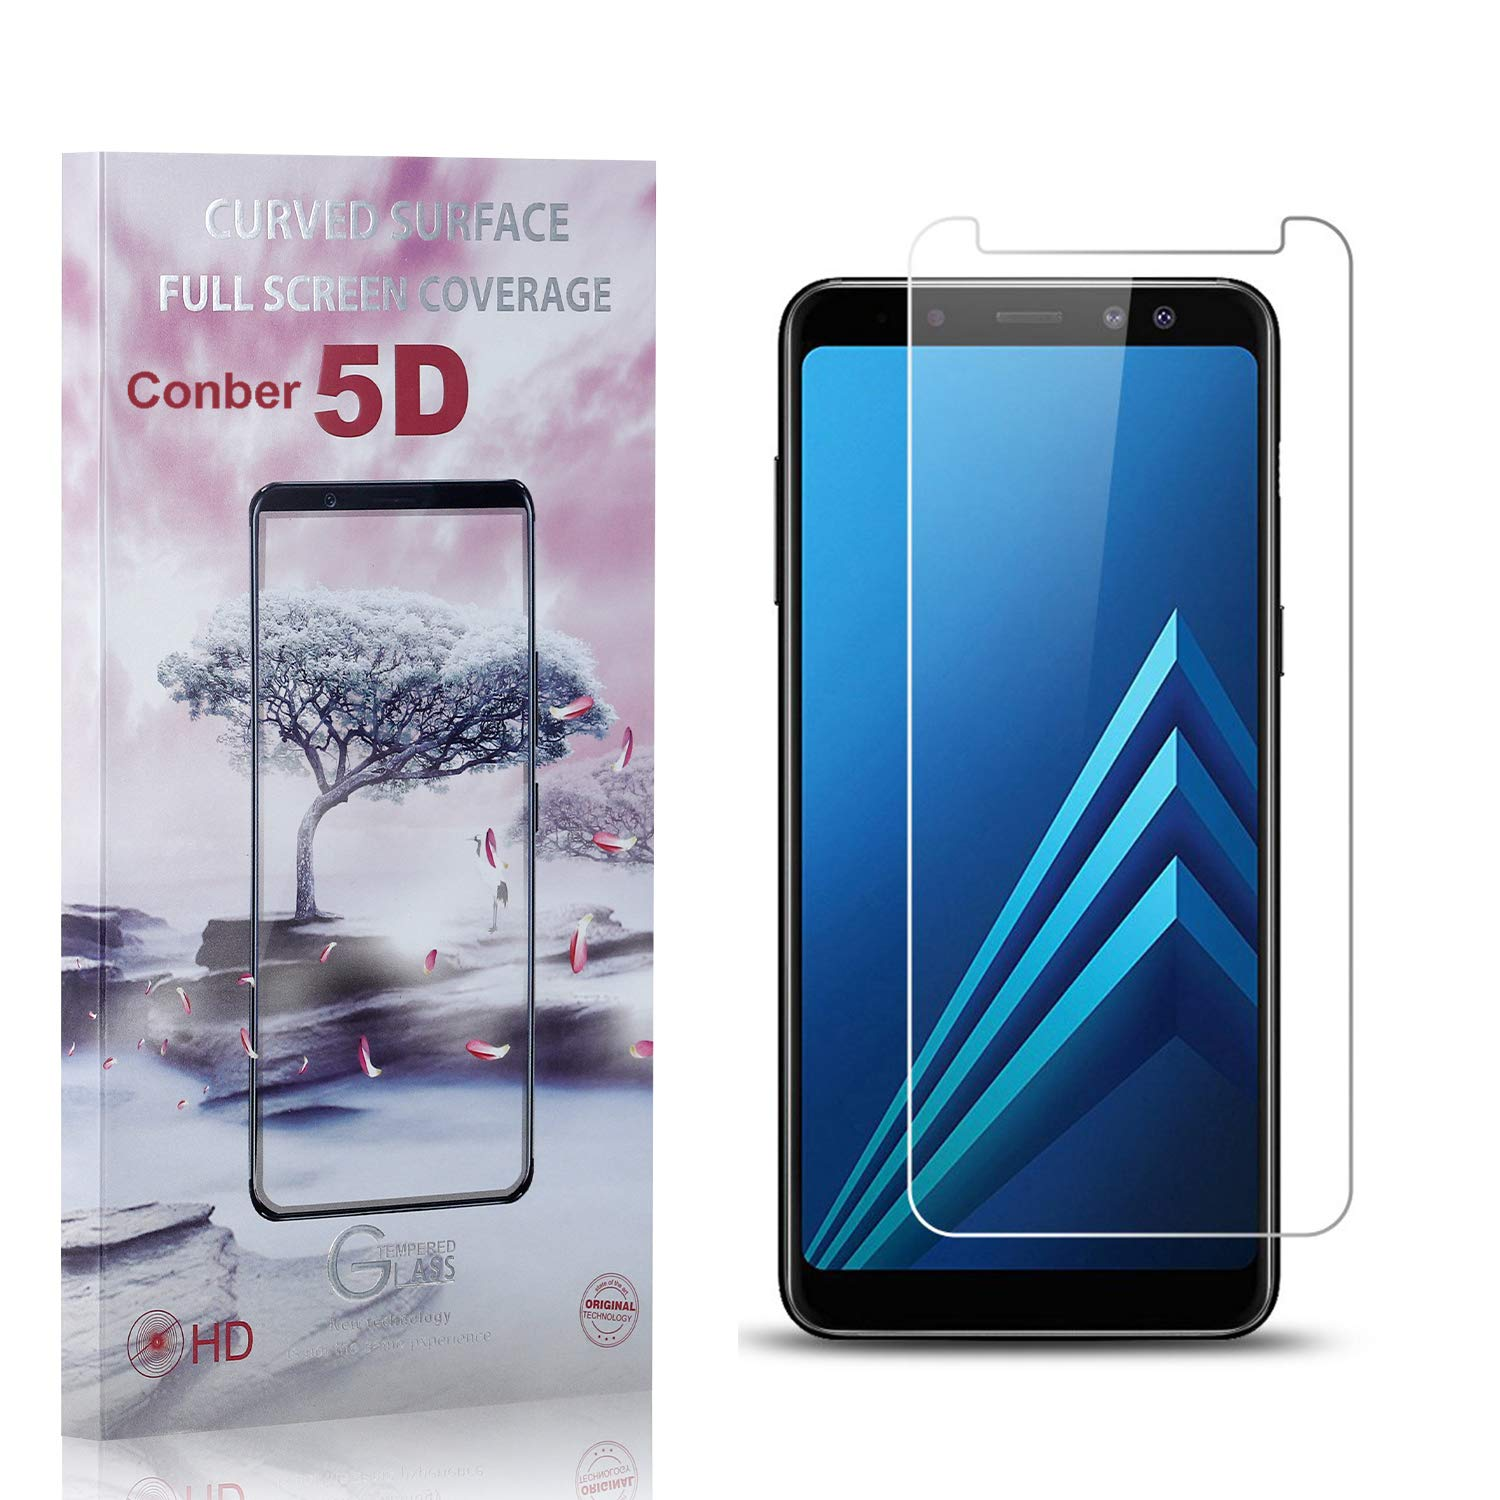 Conber Super sale 1 Pack Screen Protector for Samsung Galaxy A8 An 2018 Max 68% OFF